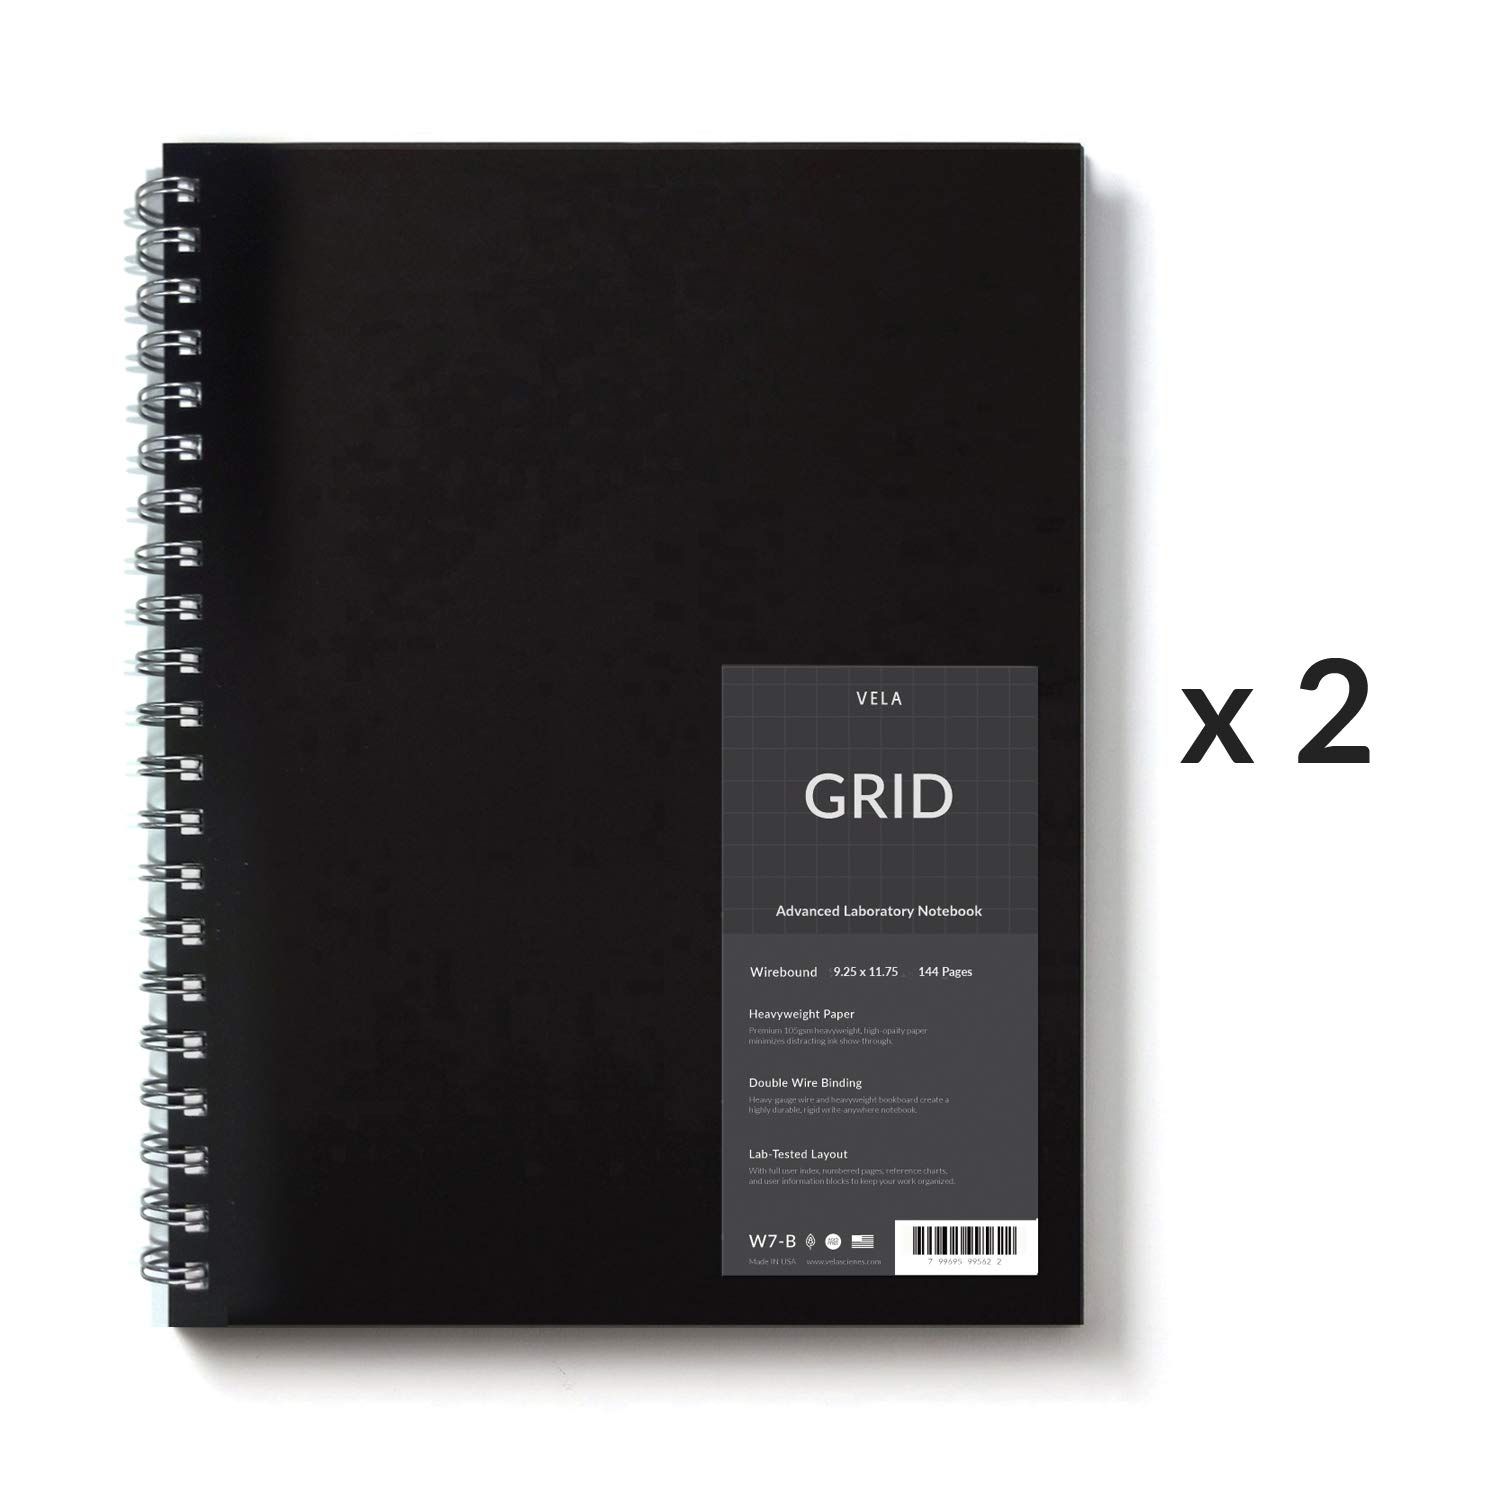 Vela Sciences Advanced Wirebound Lab Notebook, 9.25 x 11.75 inches, 144 Pages (2-Pack, Grid)